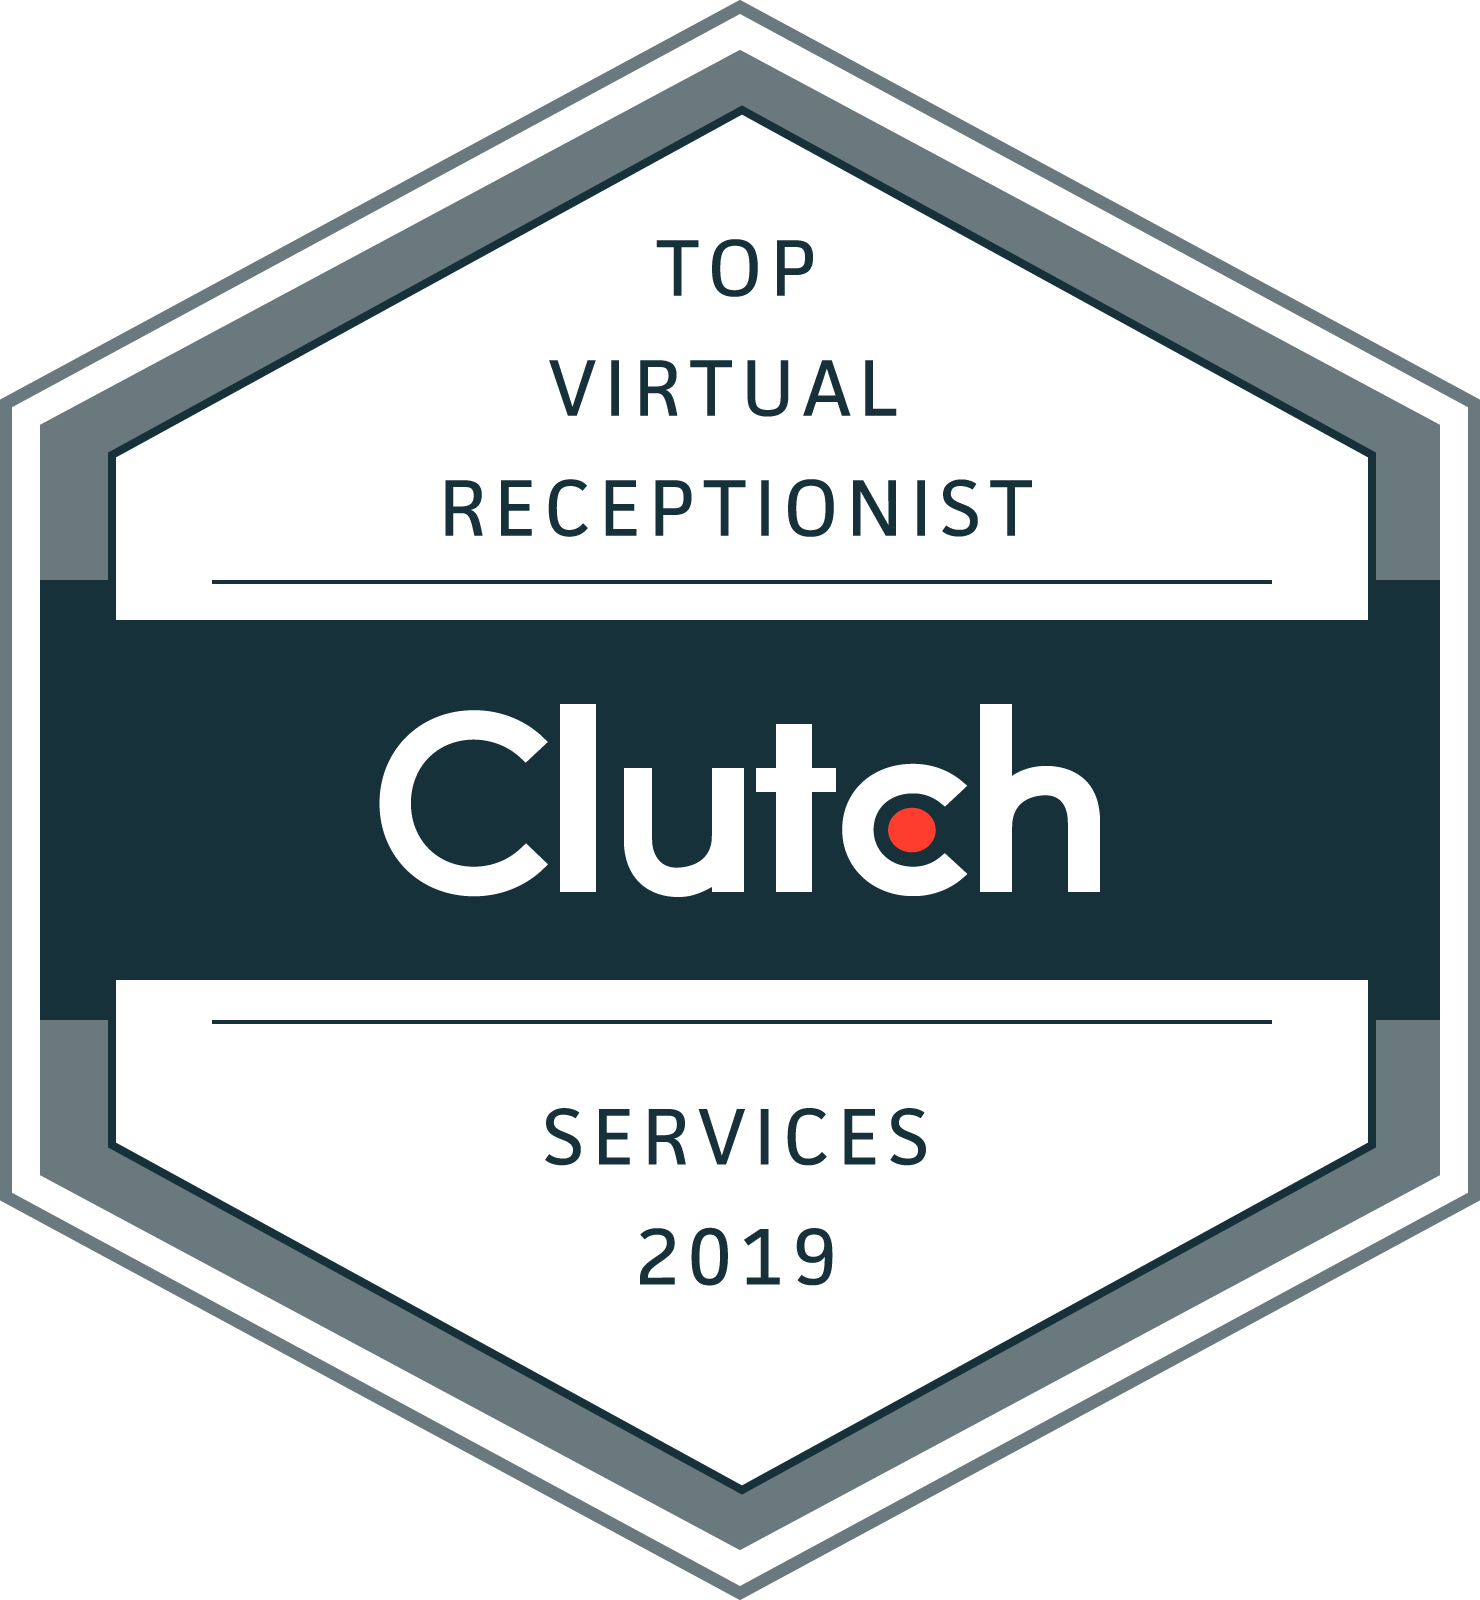 Clutch - Top virtual receptionist services 2019